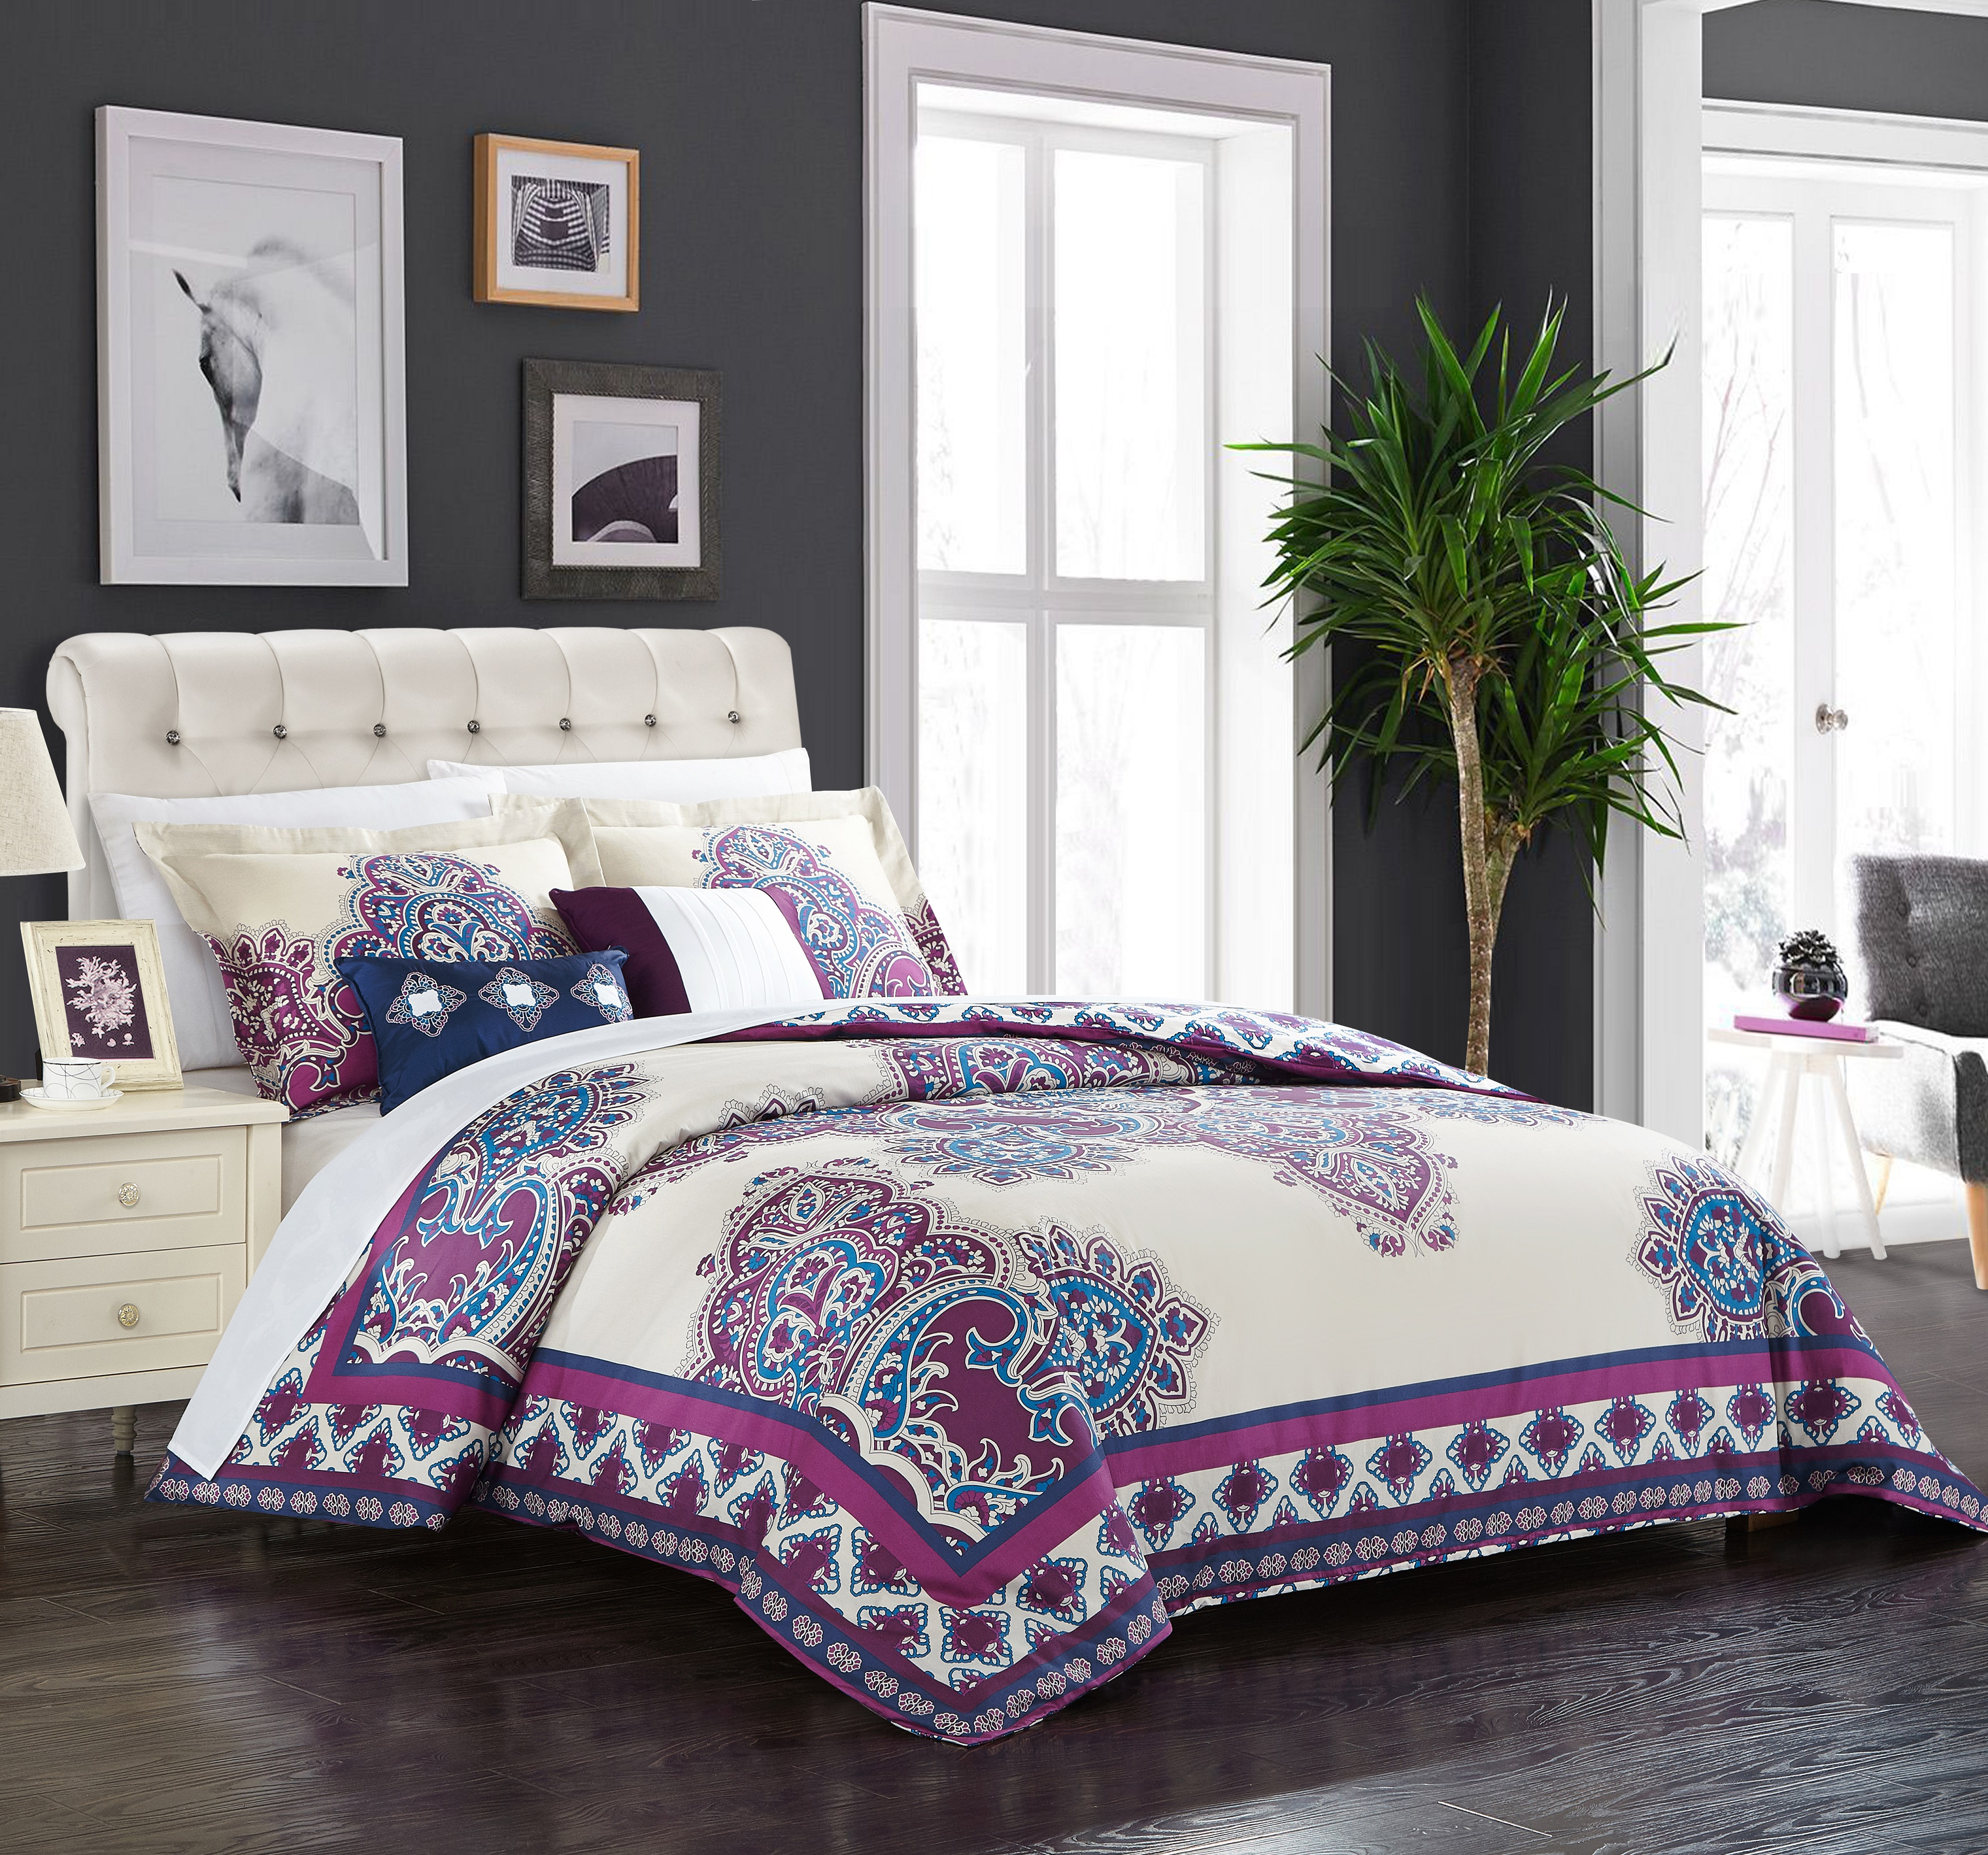 Chic Home 5-Piece Sati 100% Cotton 200 Thread Count Extra Large Panel Framed Vintage Boho Printed REVERSIBLE Queen Comforter Set Purple